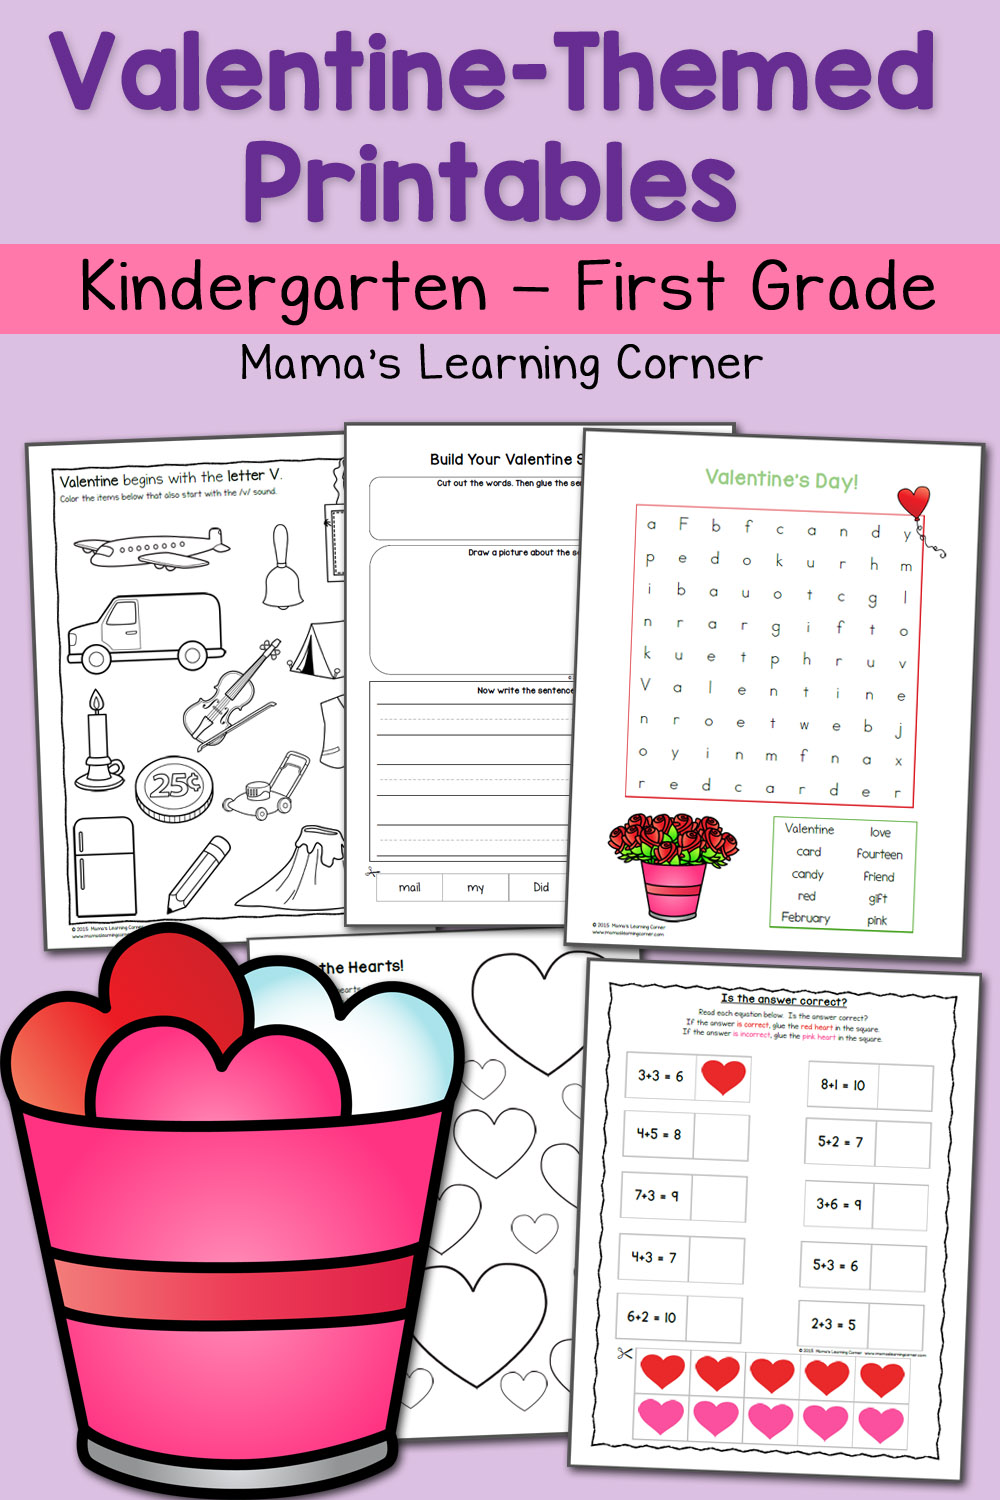 - Valentine Worksheets For Kindergarten And First Grade - Mamas